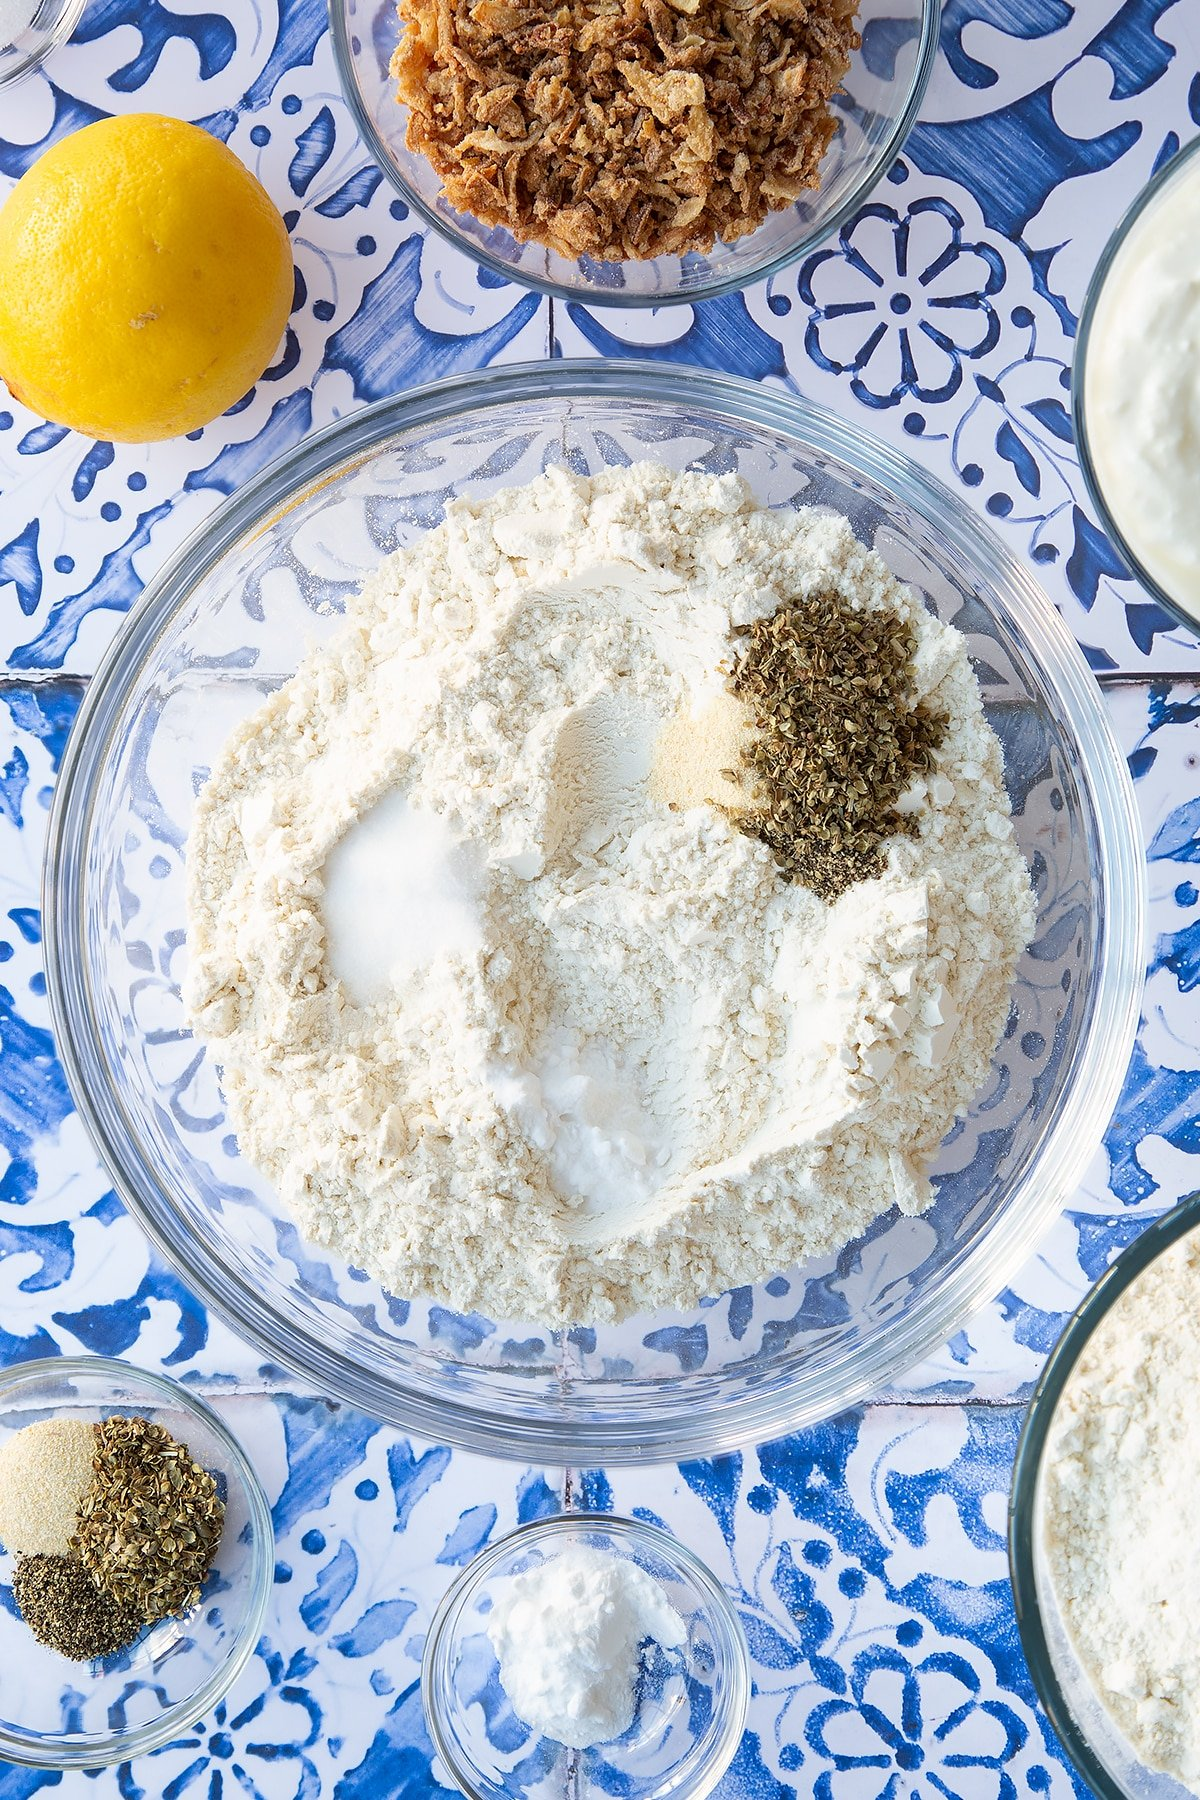 Flour, salt, bicarbonate of soda, garlic granules, oregano, salt and pepper in a mixing bowl. Ingredients to make onion soda bread surround the bowl.